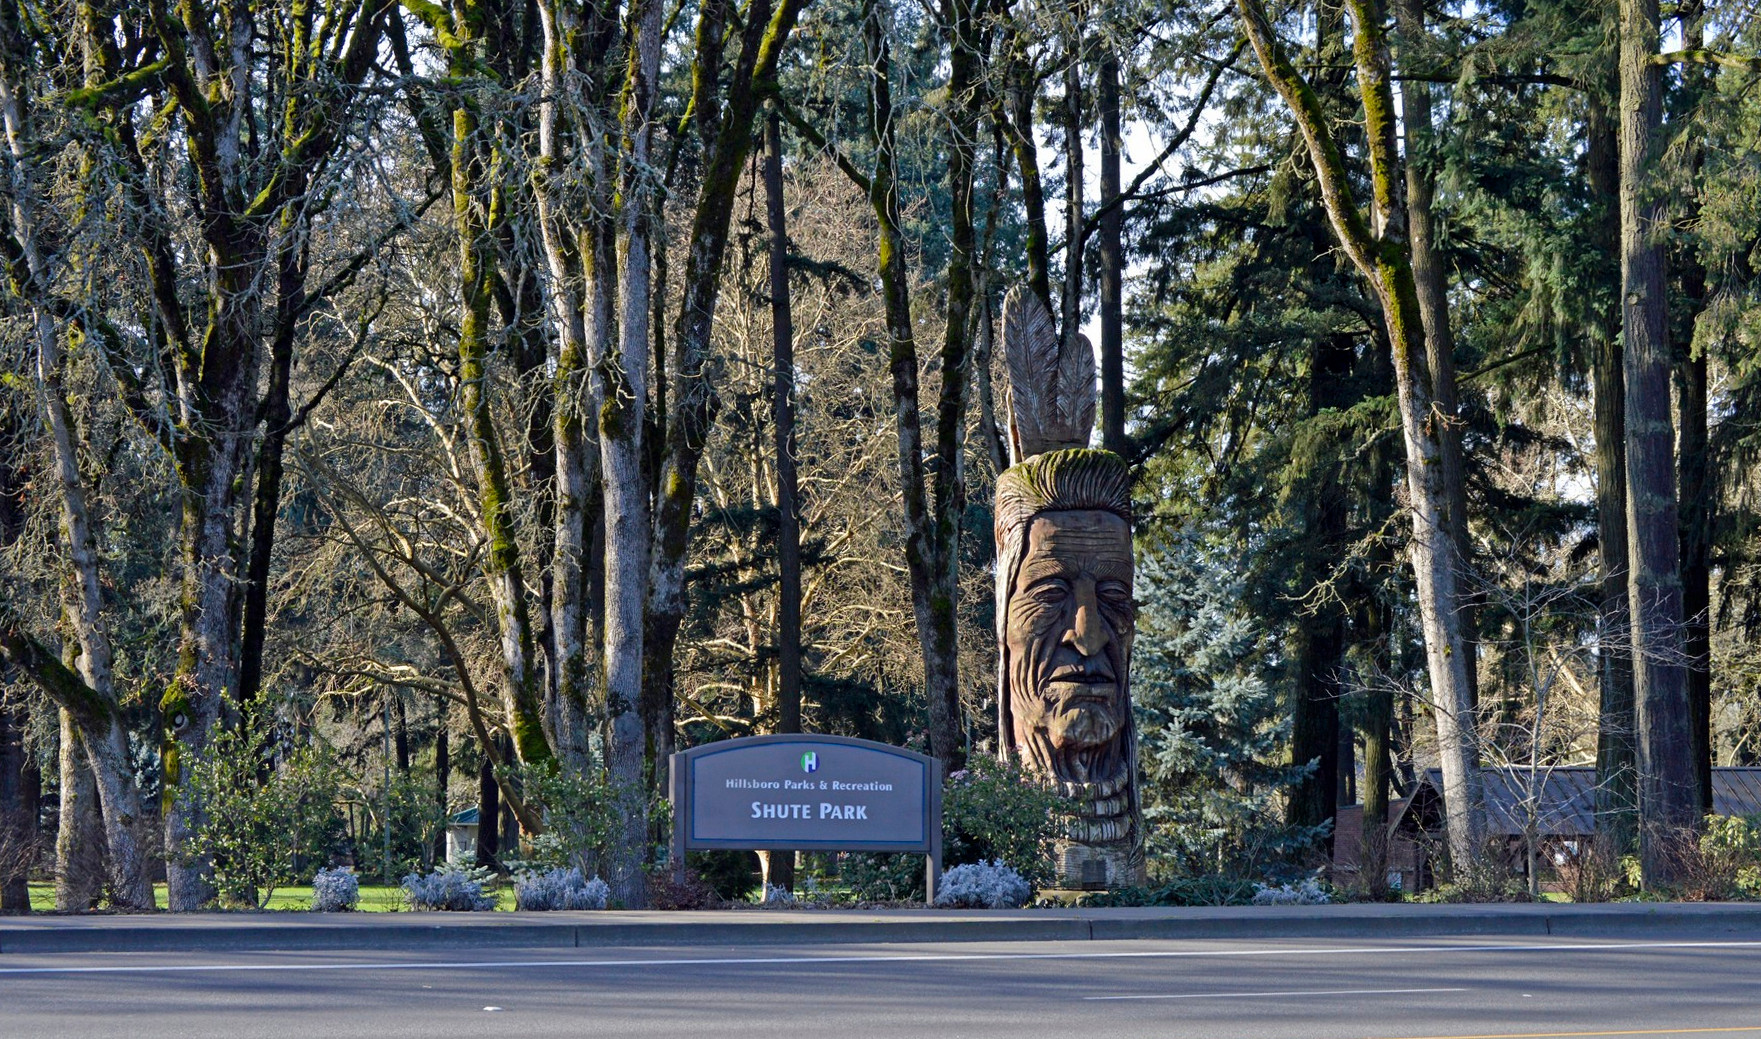 2-hillsboro-oregon-parks-and-recreation-shute-park-the-kelly-group-real-estate